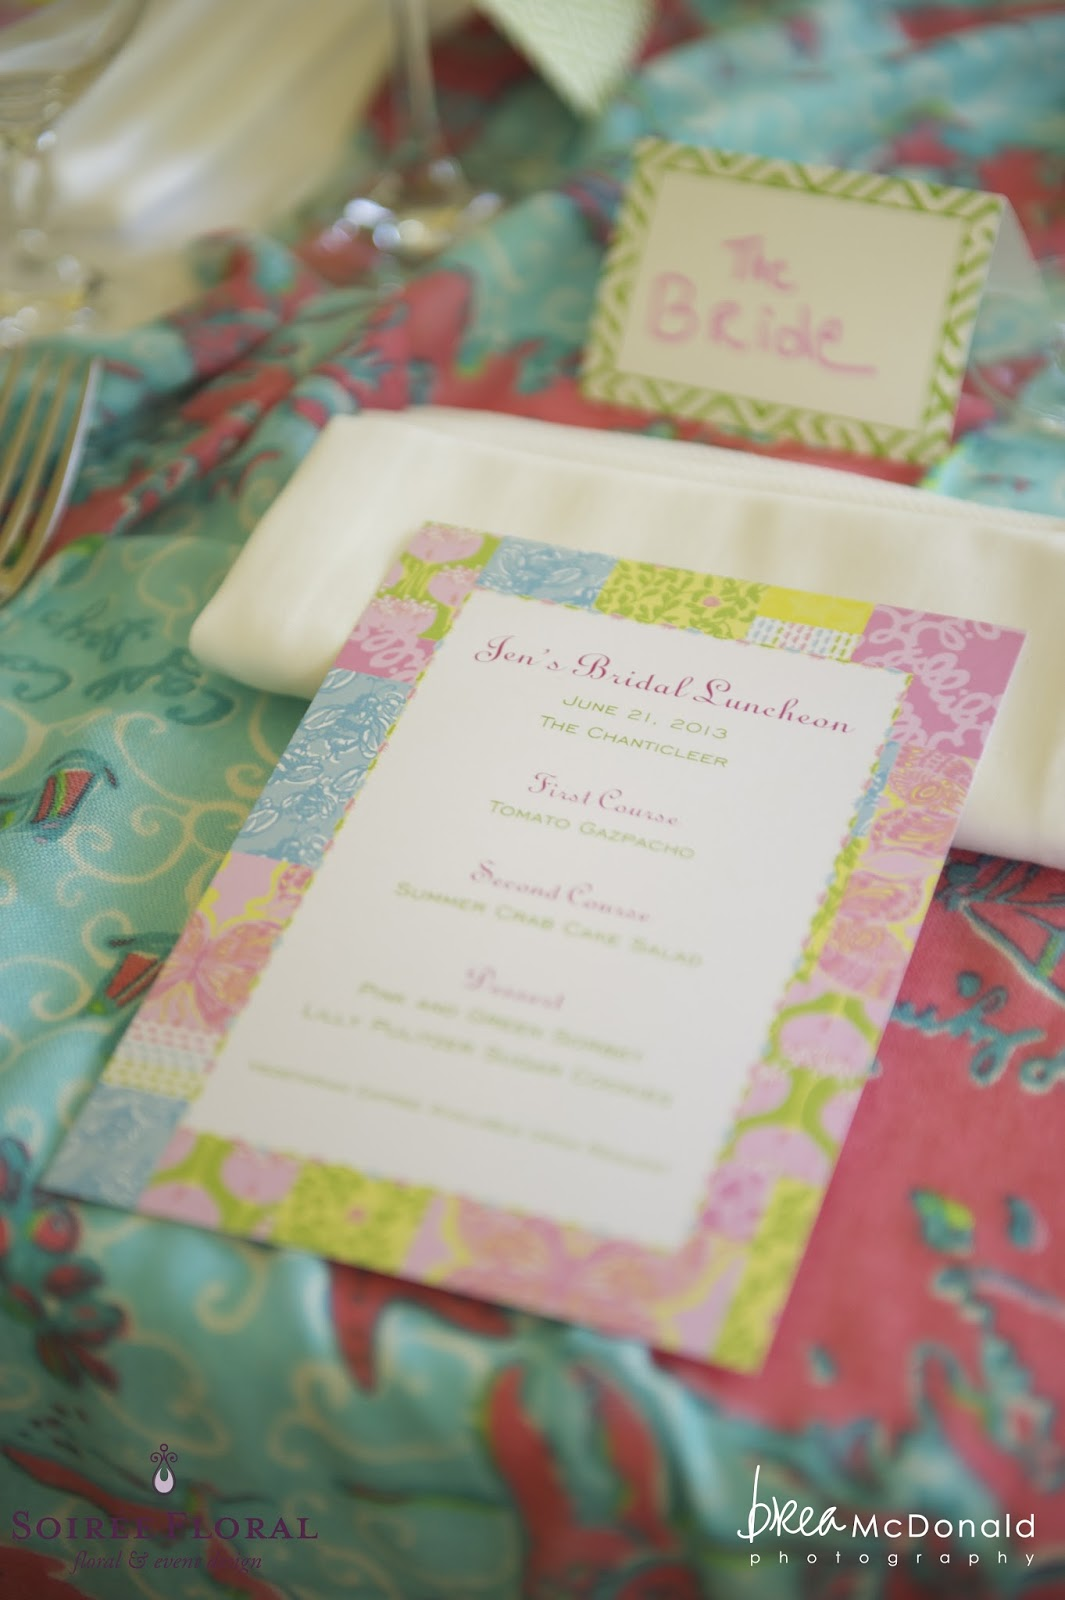 fun bright and preppy we wanted to share with you a few details from the party